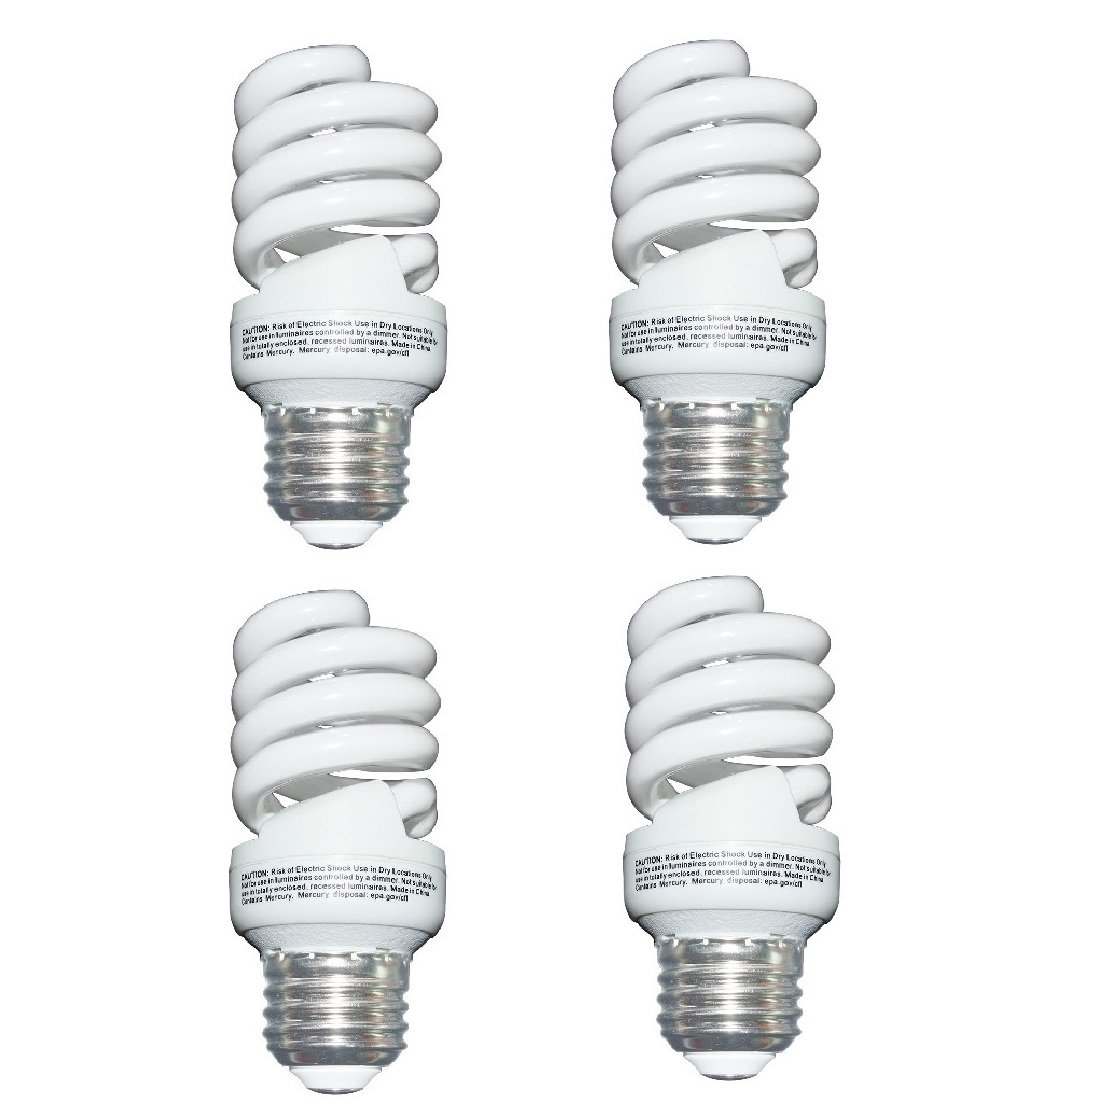 13 Watt (60 Watt) Compact Fluorescent Light, Soft White 2700K, 1040LM, Spiral Medium Base CFL Light Bulbs (4 Pack)